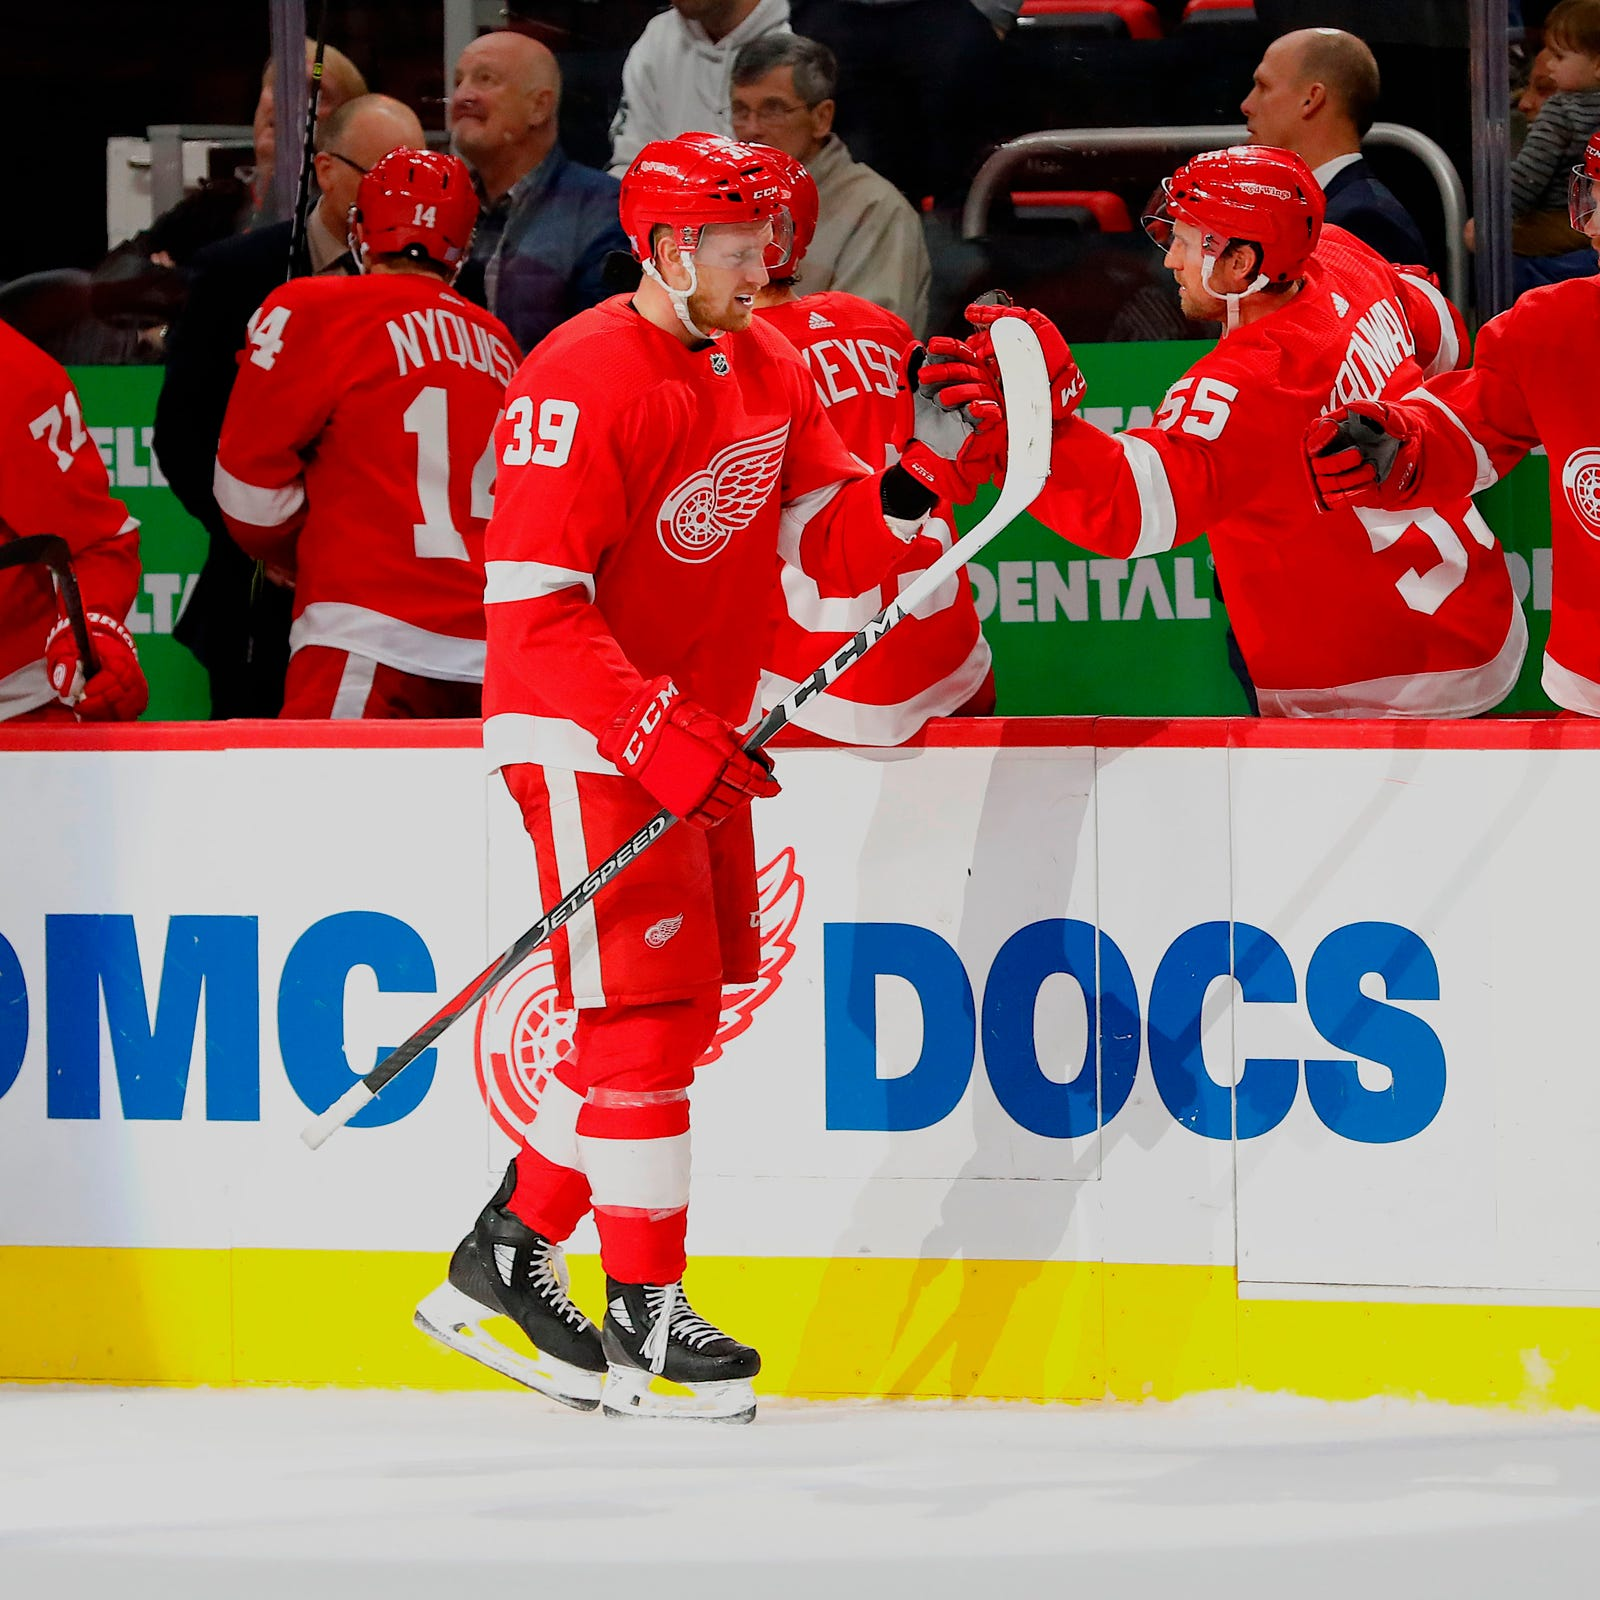 Red Wings' Anthony Mantha could score 20 goals. Why it matters